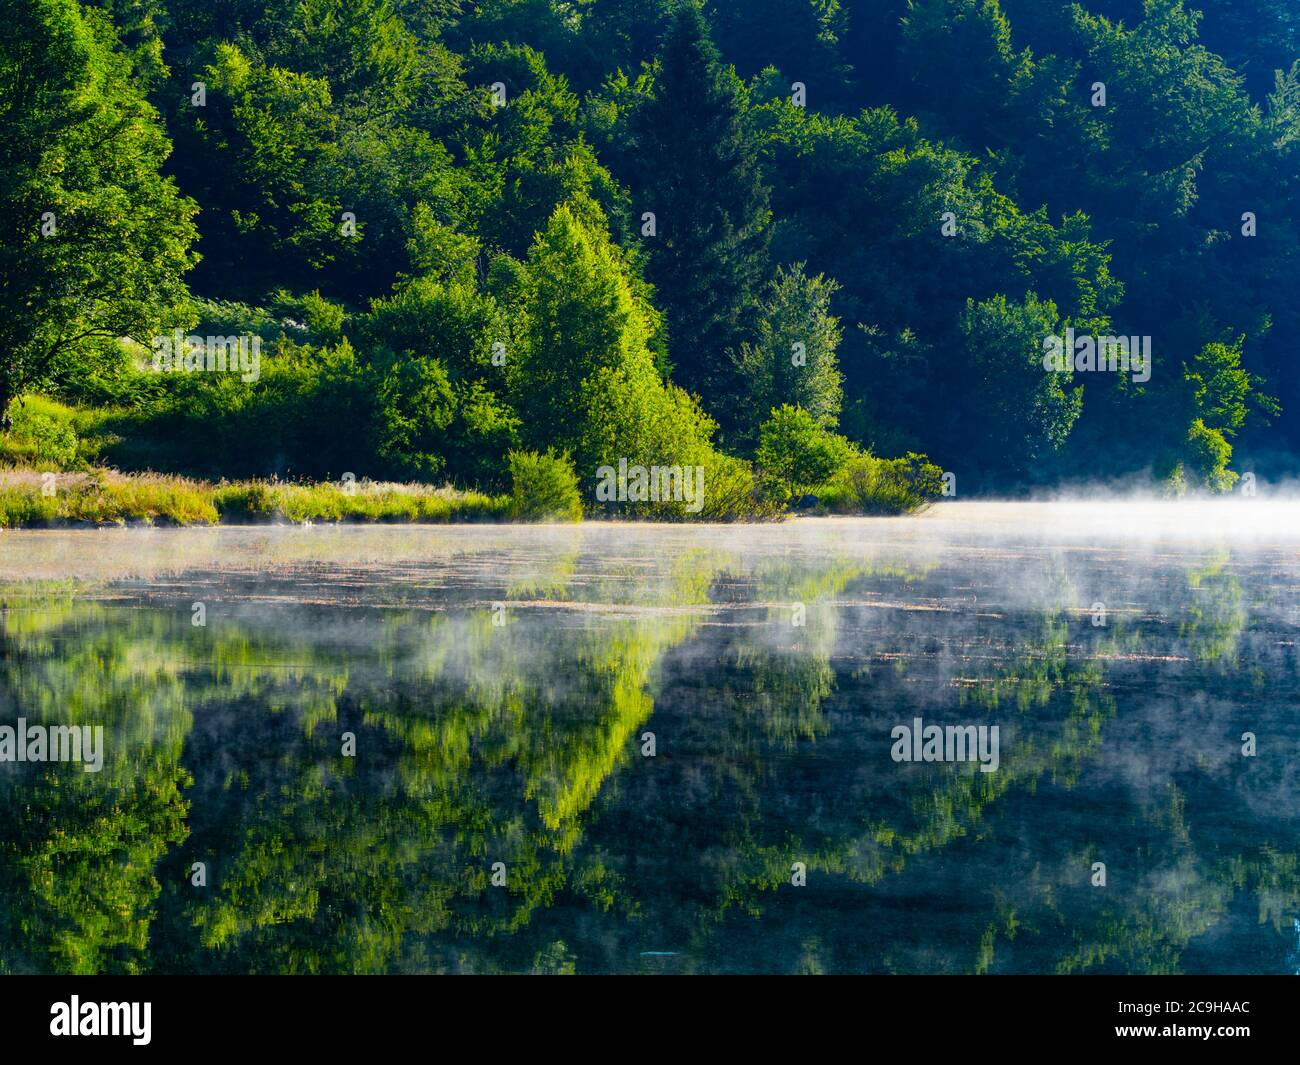 Preserved nature natural environment morning bright mist fog above water surface of Lake Mrzla vodica in Croatia Europe Stock Photo